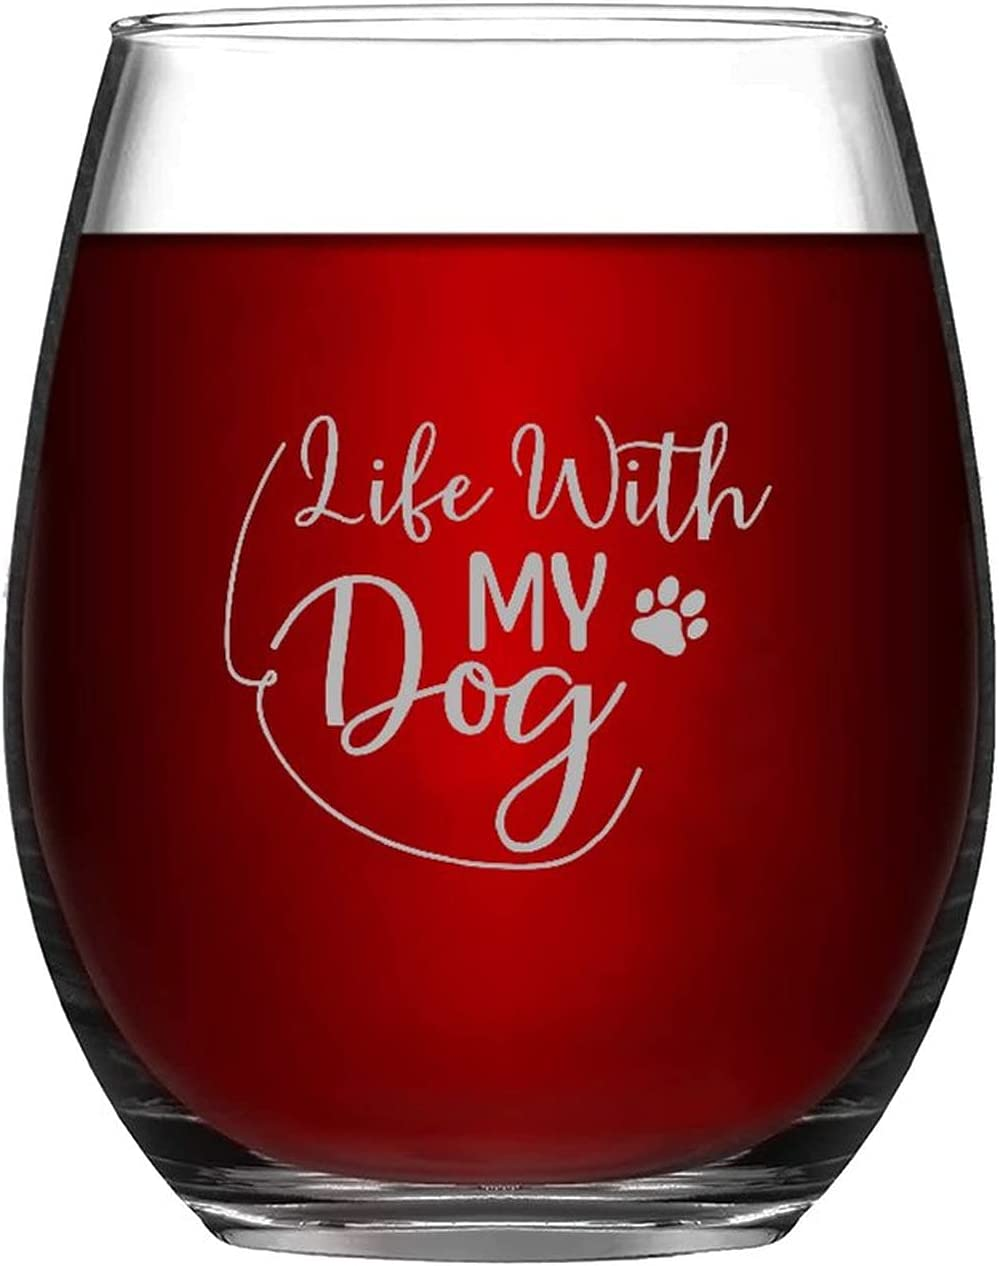 Funny Stemless Wine Glass Ranking TOP15 35% OFF Life With 11oz Drink Dog My Ware